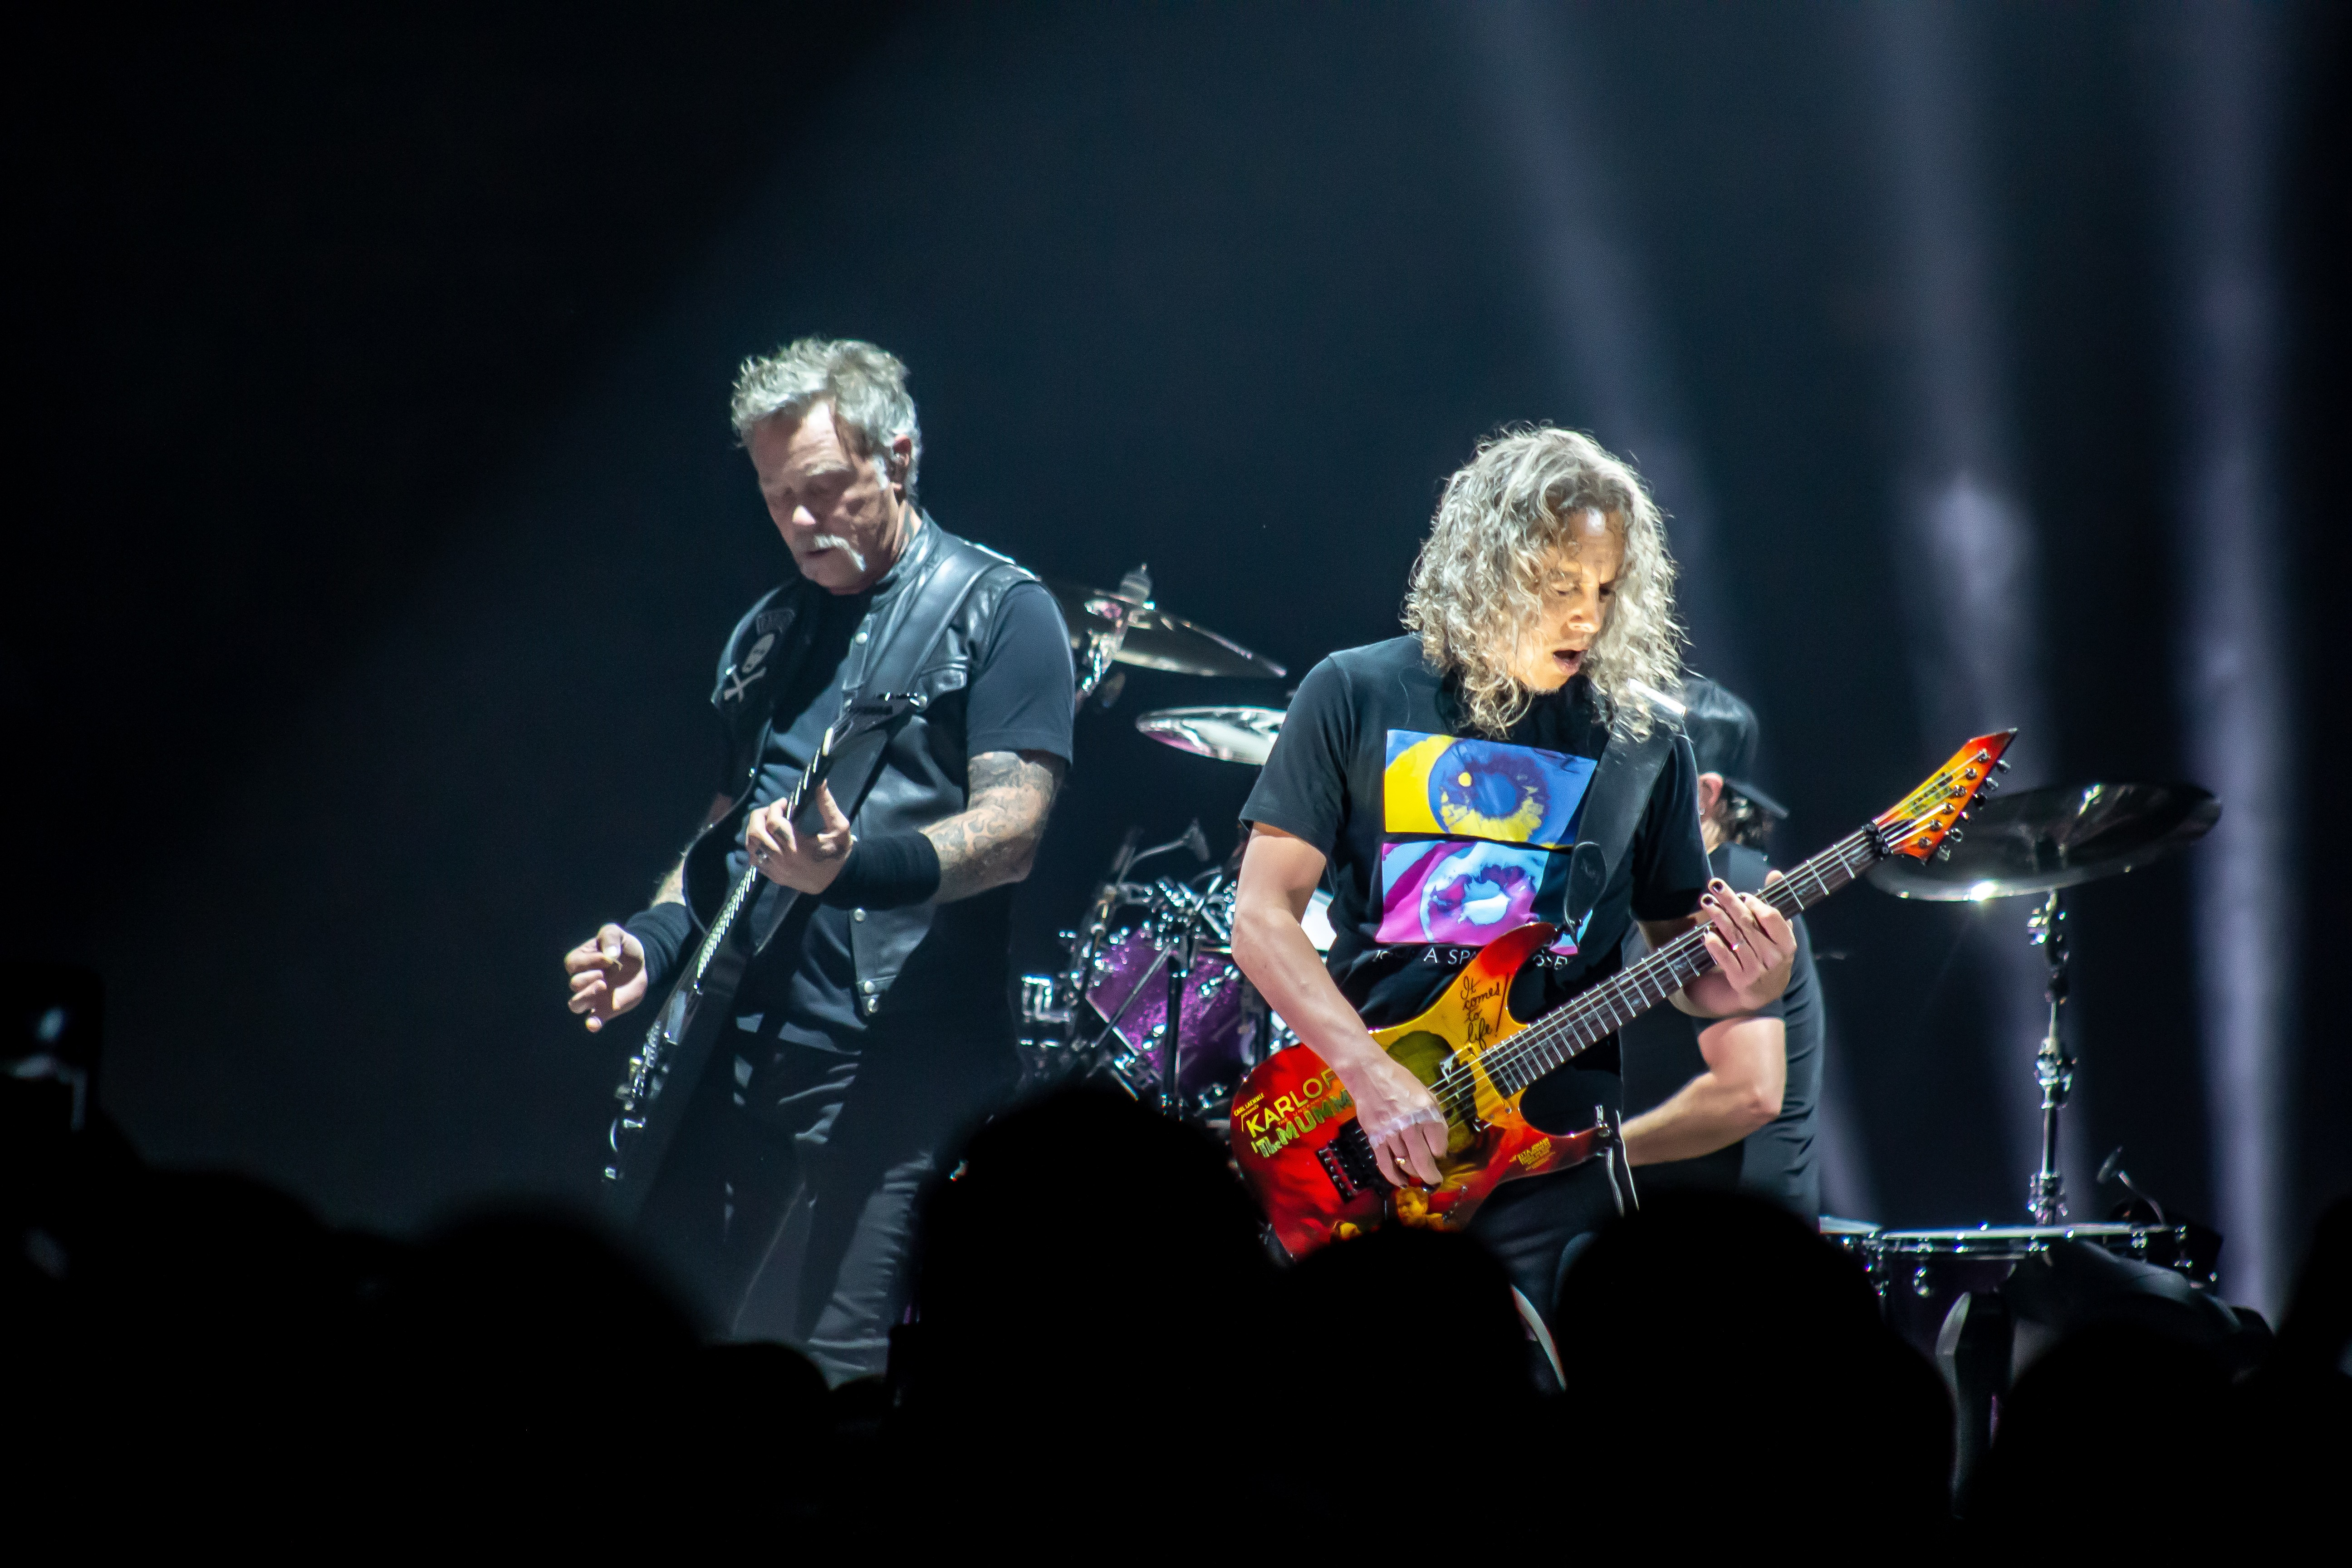 PHOTOS: Give me fuel, Give me fire! Metallica smashes the